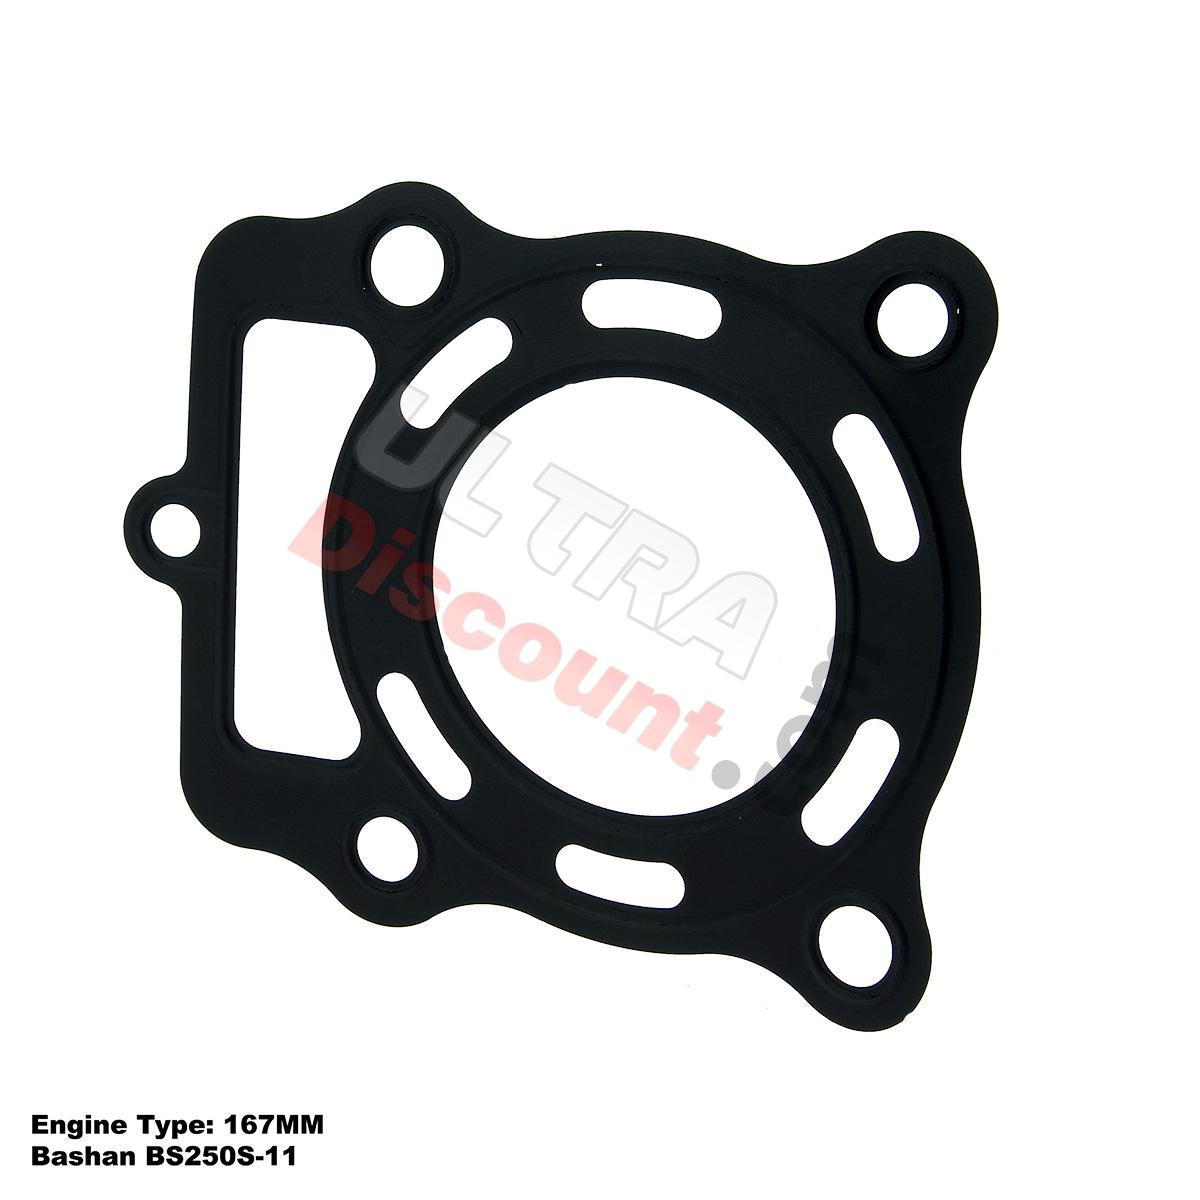 cylinder head gasket for atv bashan racing quad 250cc bs250s 11 engine bashan parts atv. Black Bedroom Furniture Sets. Home Design Ideas